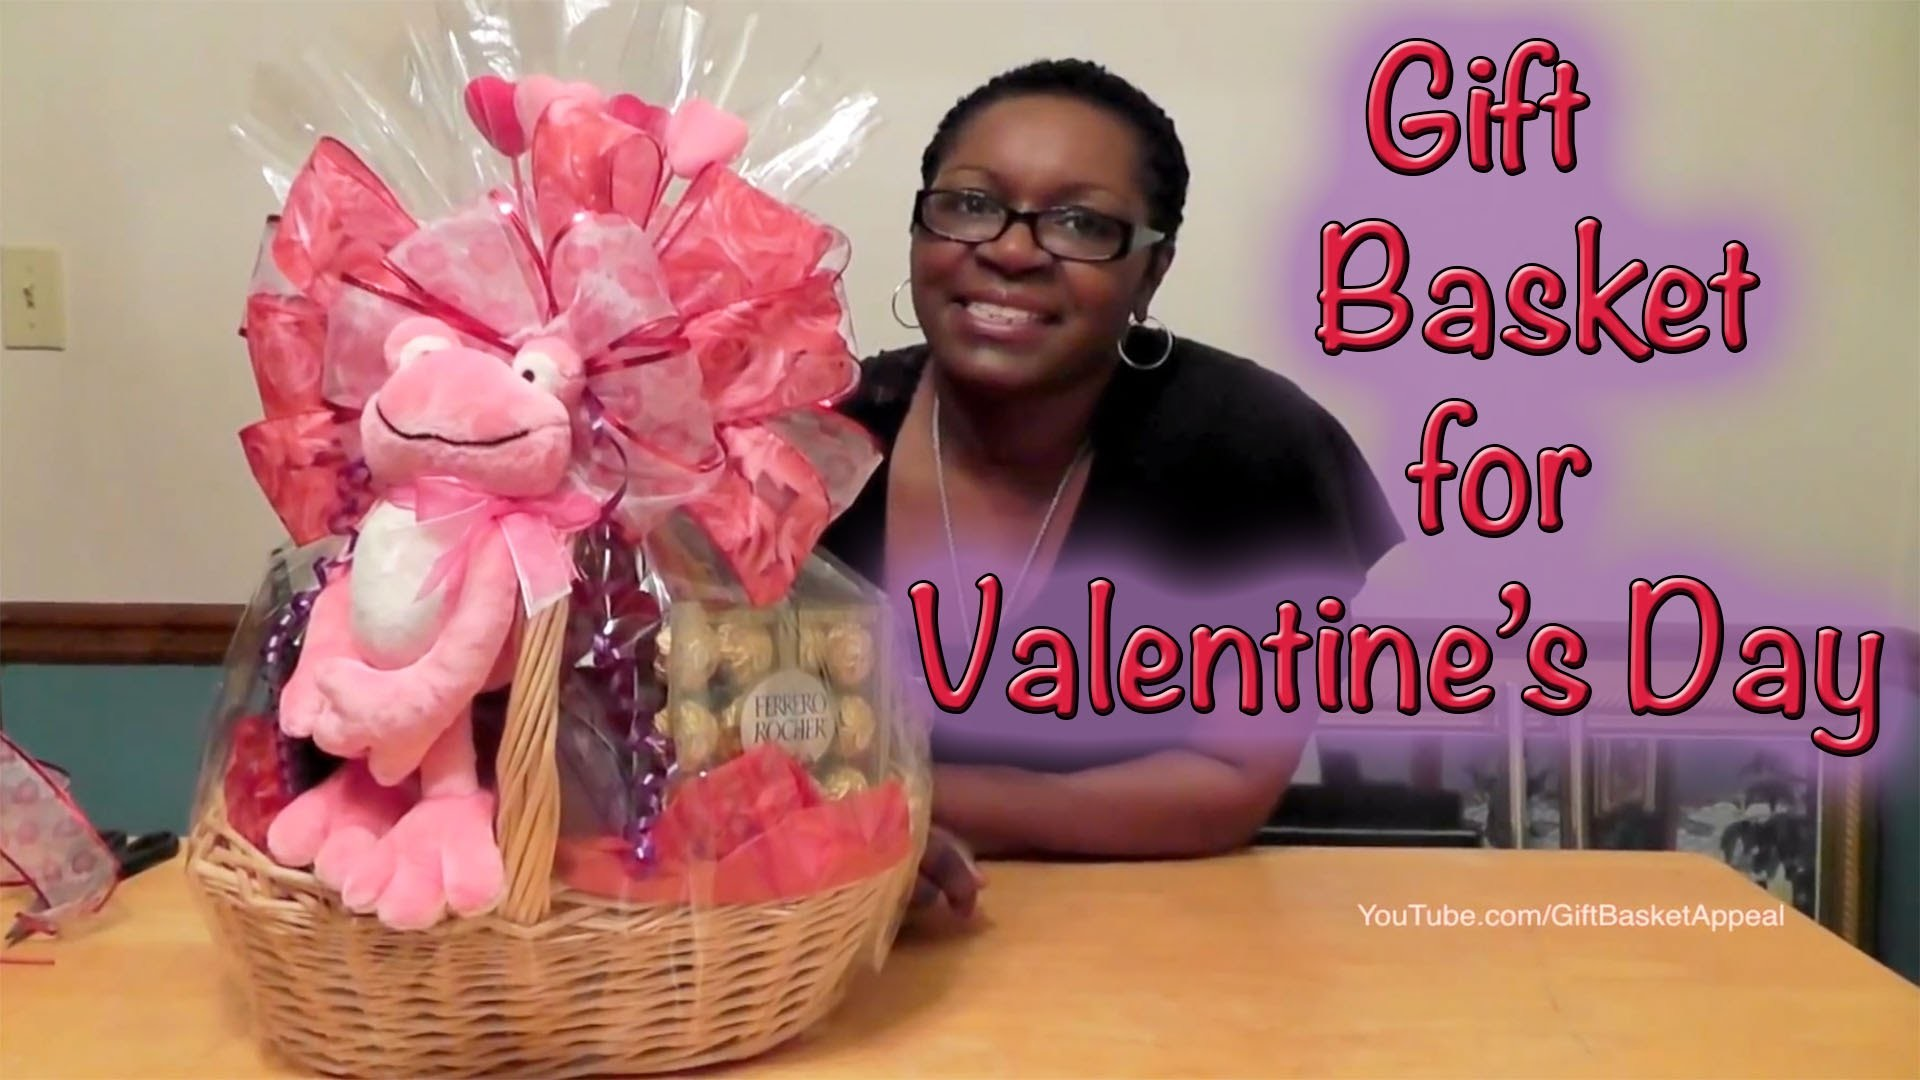 Gift Basket Instructions - How to Make a Valentine's Day Gift Basket - Giftbasketappeal